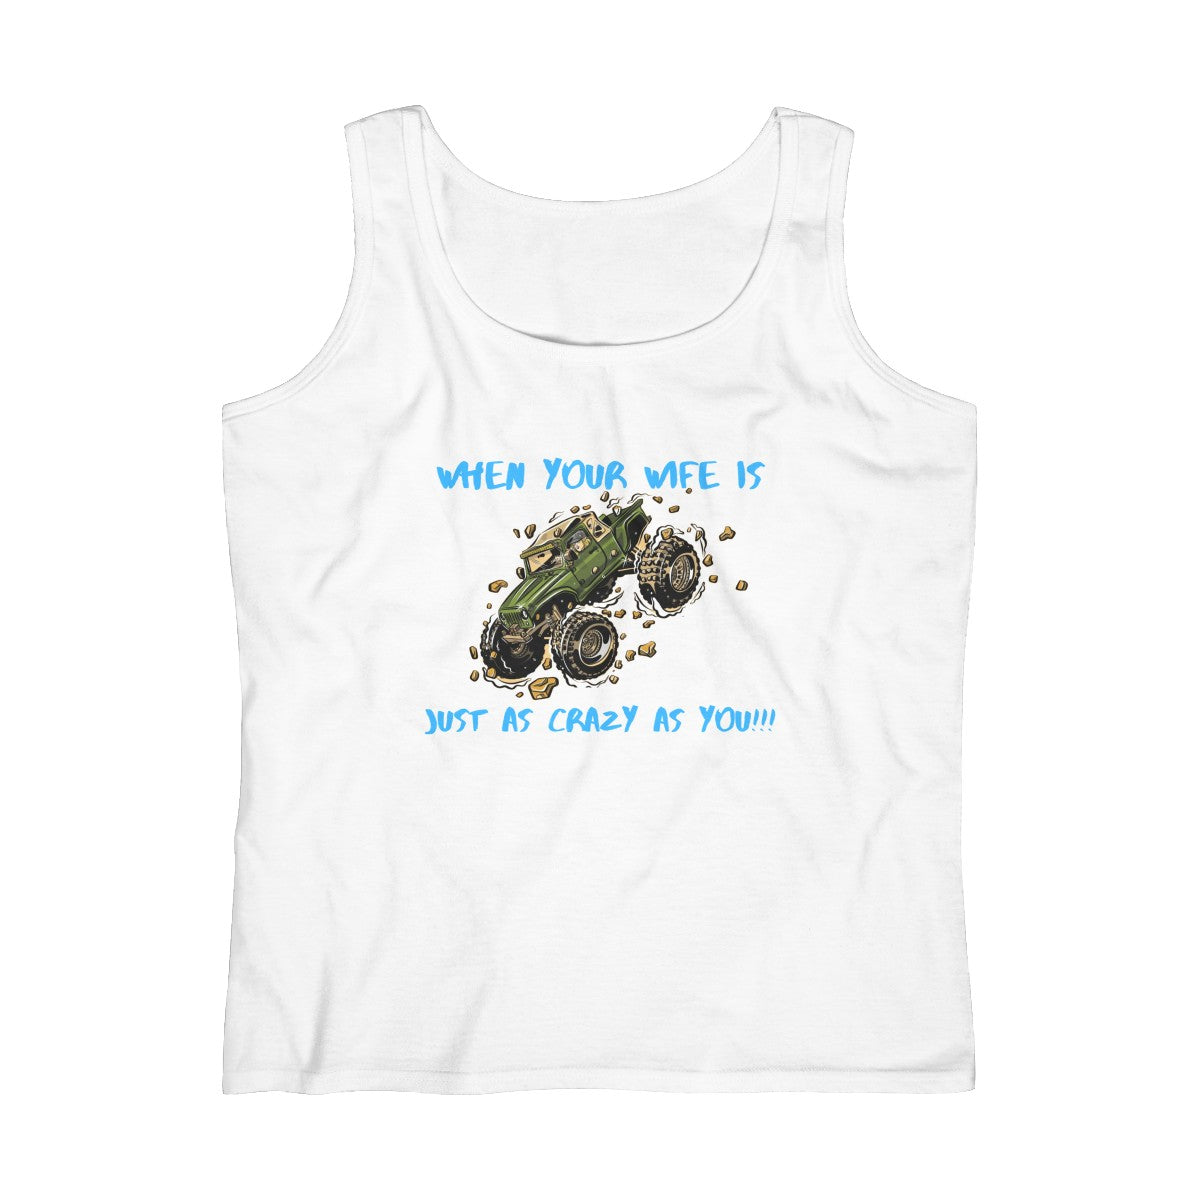 Crazy wife Women's Lightweight Tank Top